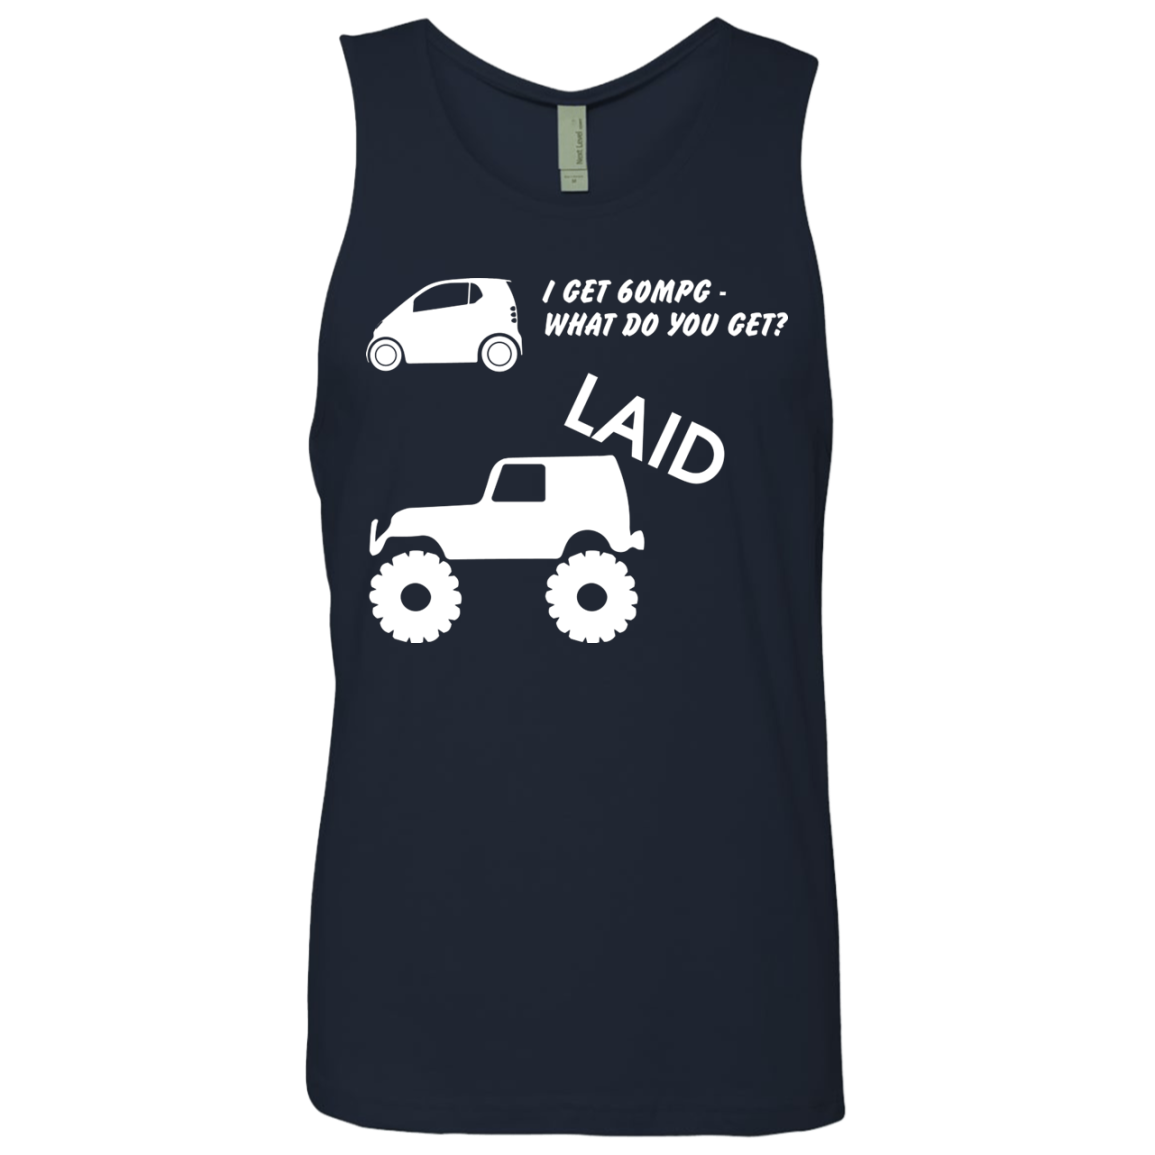 Jeep wrangler lifted smart car mpg laid t shirt autozik jeep wrangler lifted smart car mpg laid t shirt sciox Gallery